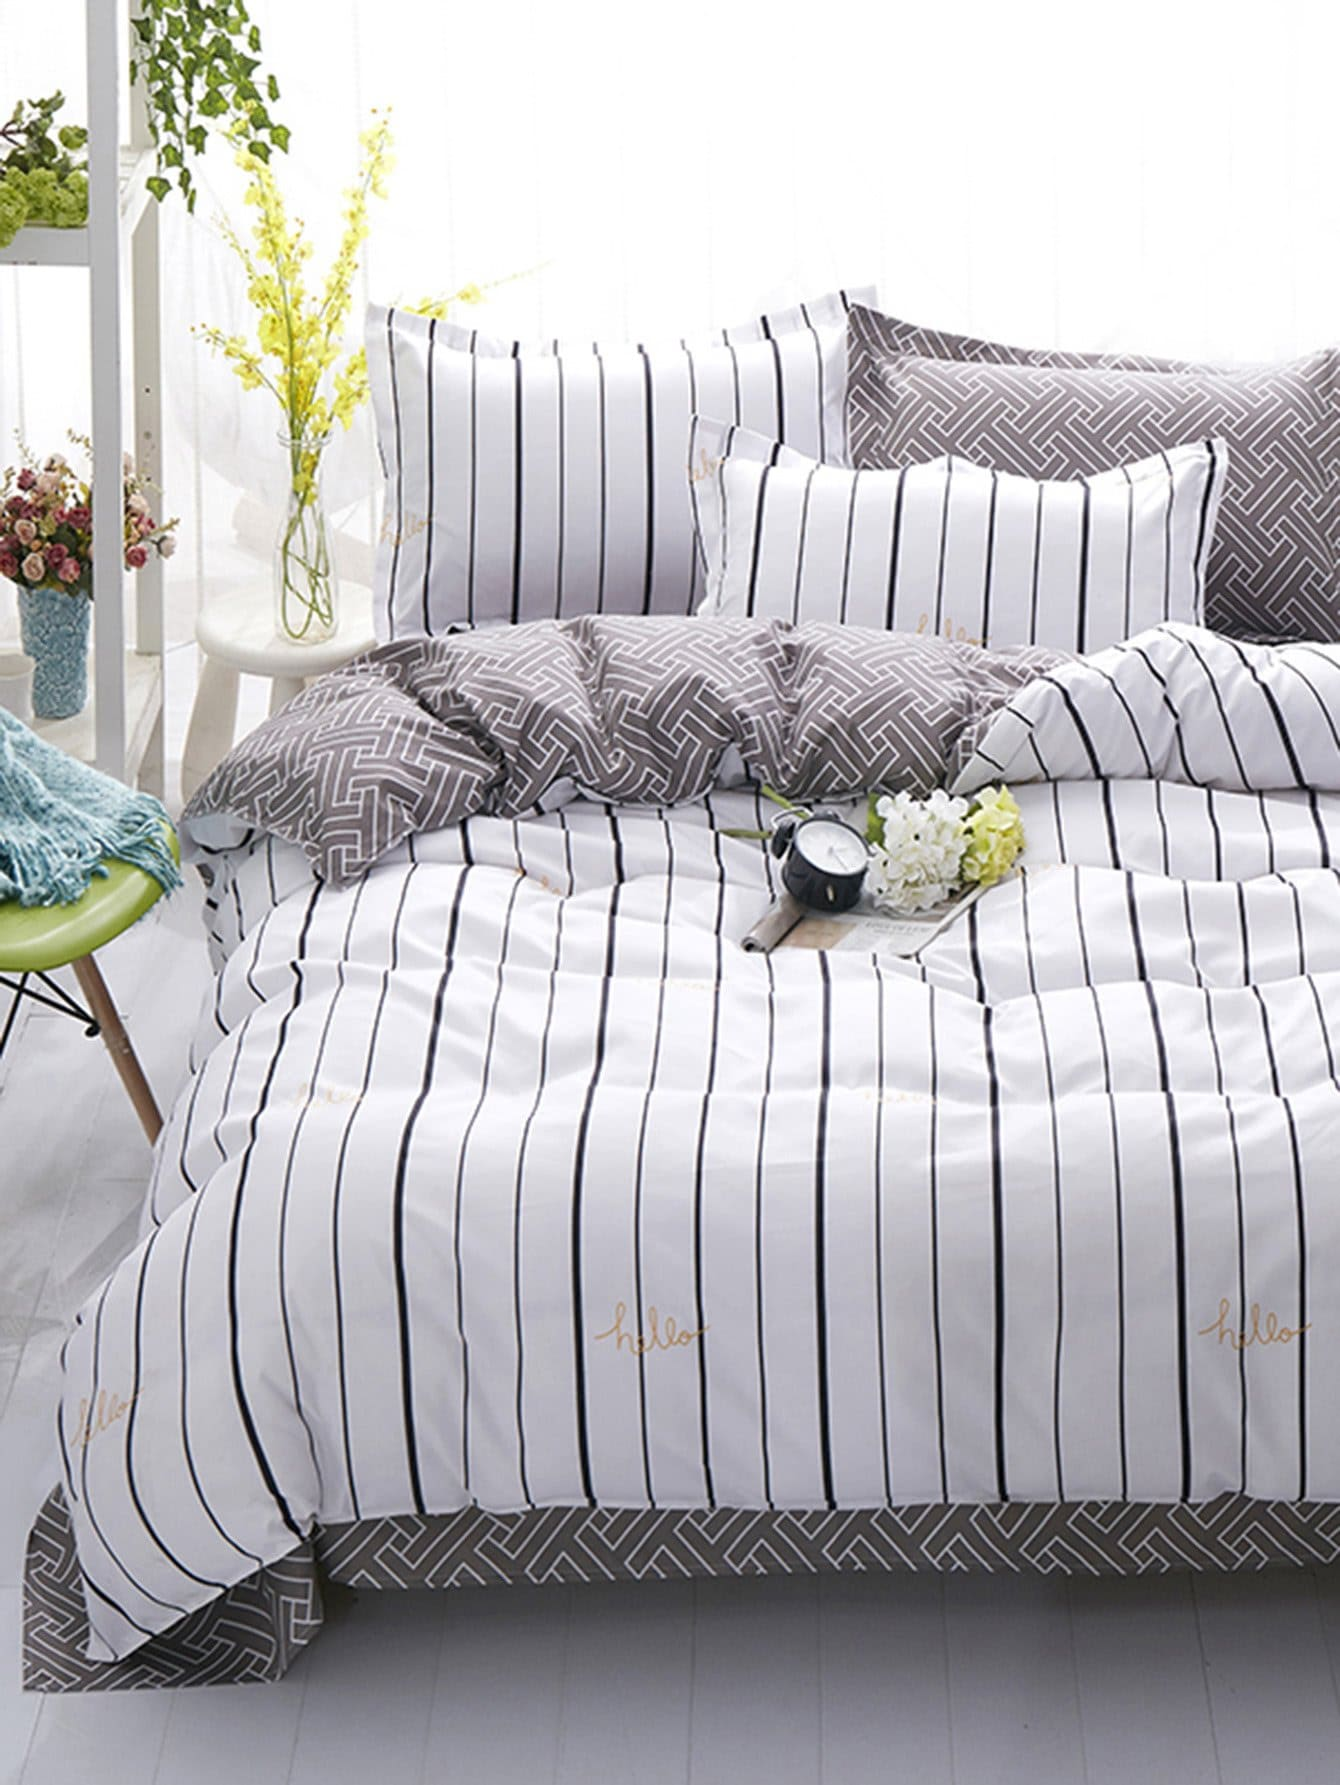 Vertical Striped Bedding Set vertical striped bedding set